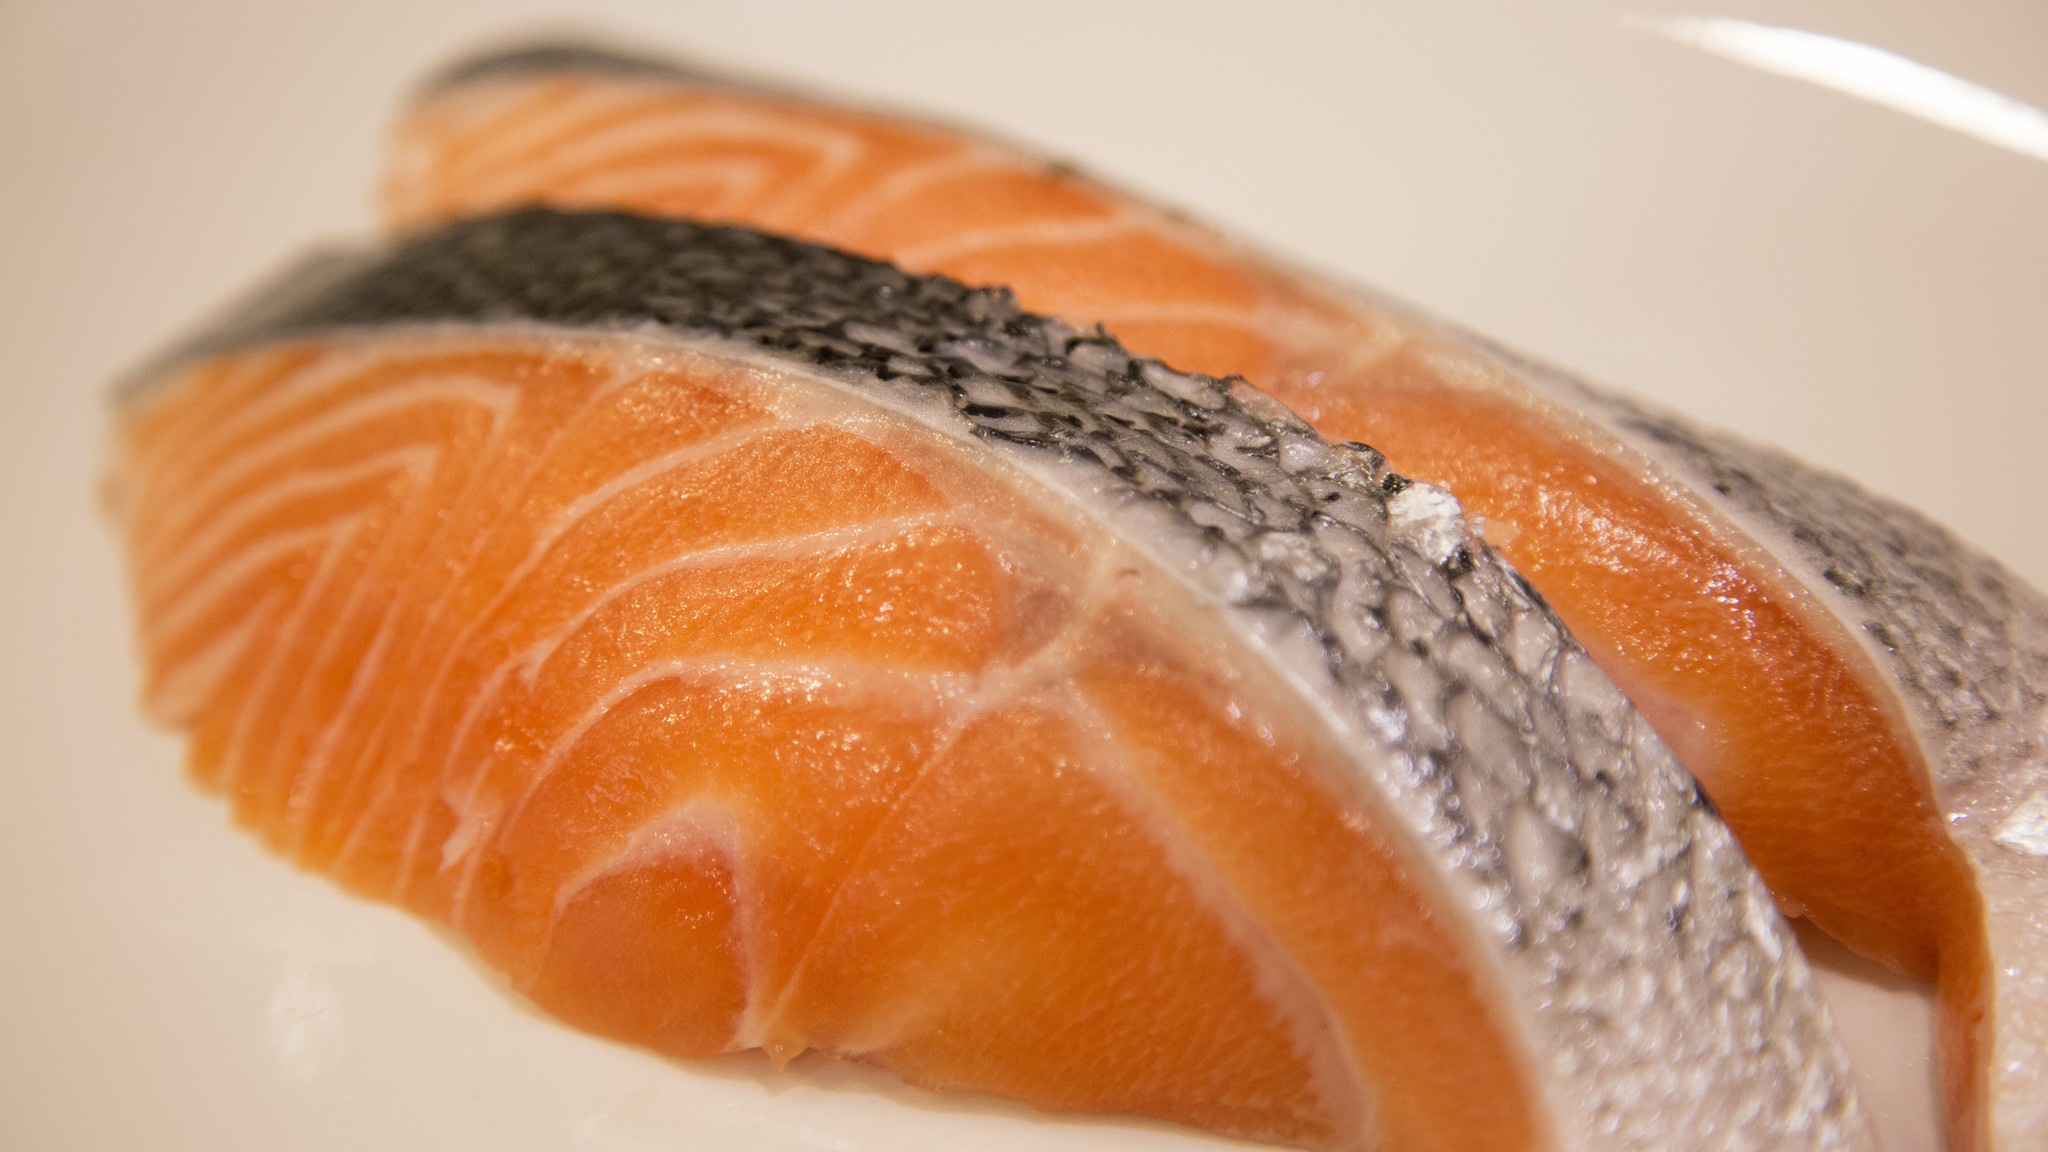 Most farm-raised salmon is considered unsustainable.